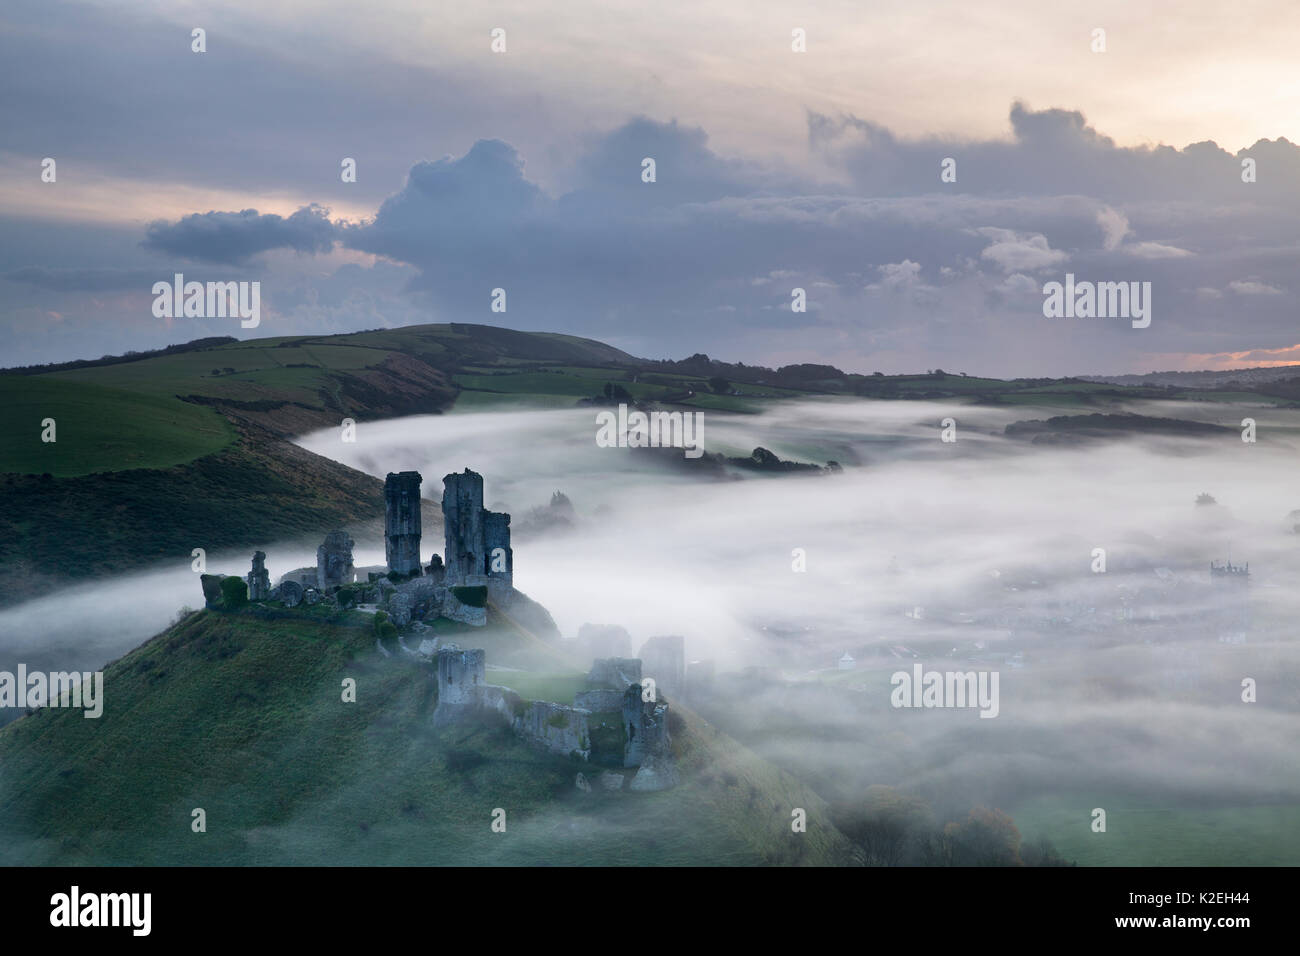 Corfe Castle in the mist at dawn, Dorset, England, UK, November 2014, - Stock Image